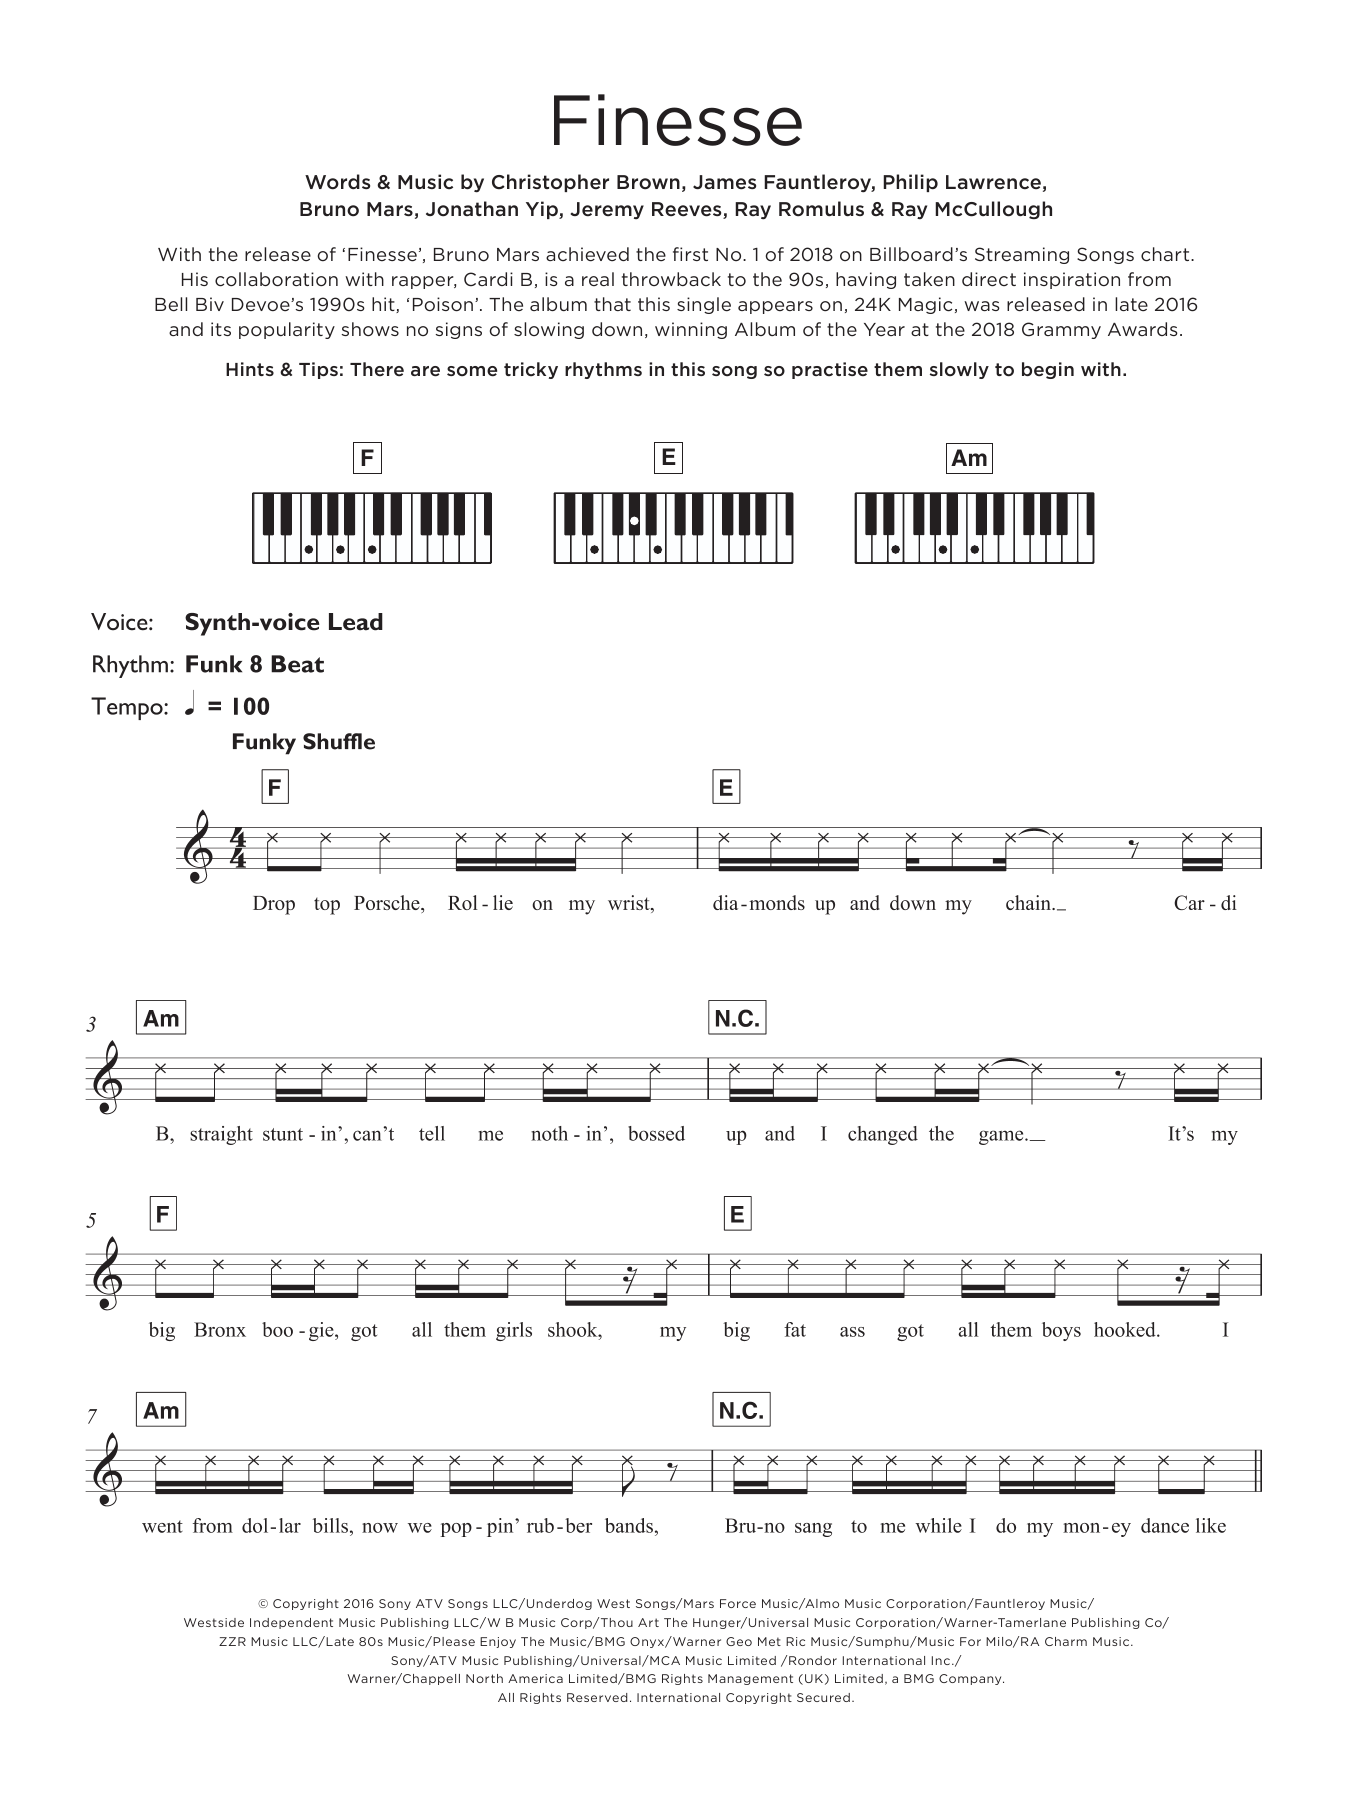 Finesse (featuring Cardi B) Sheet Music